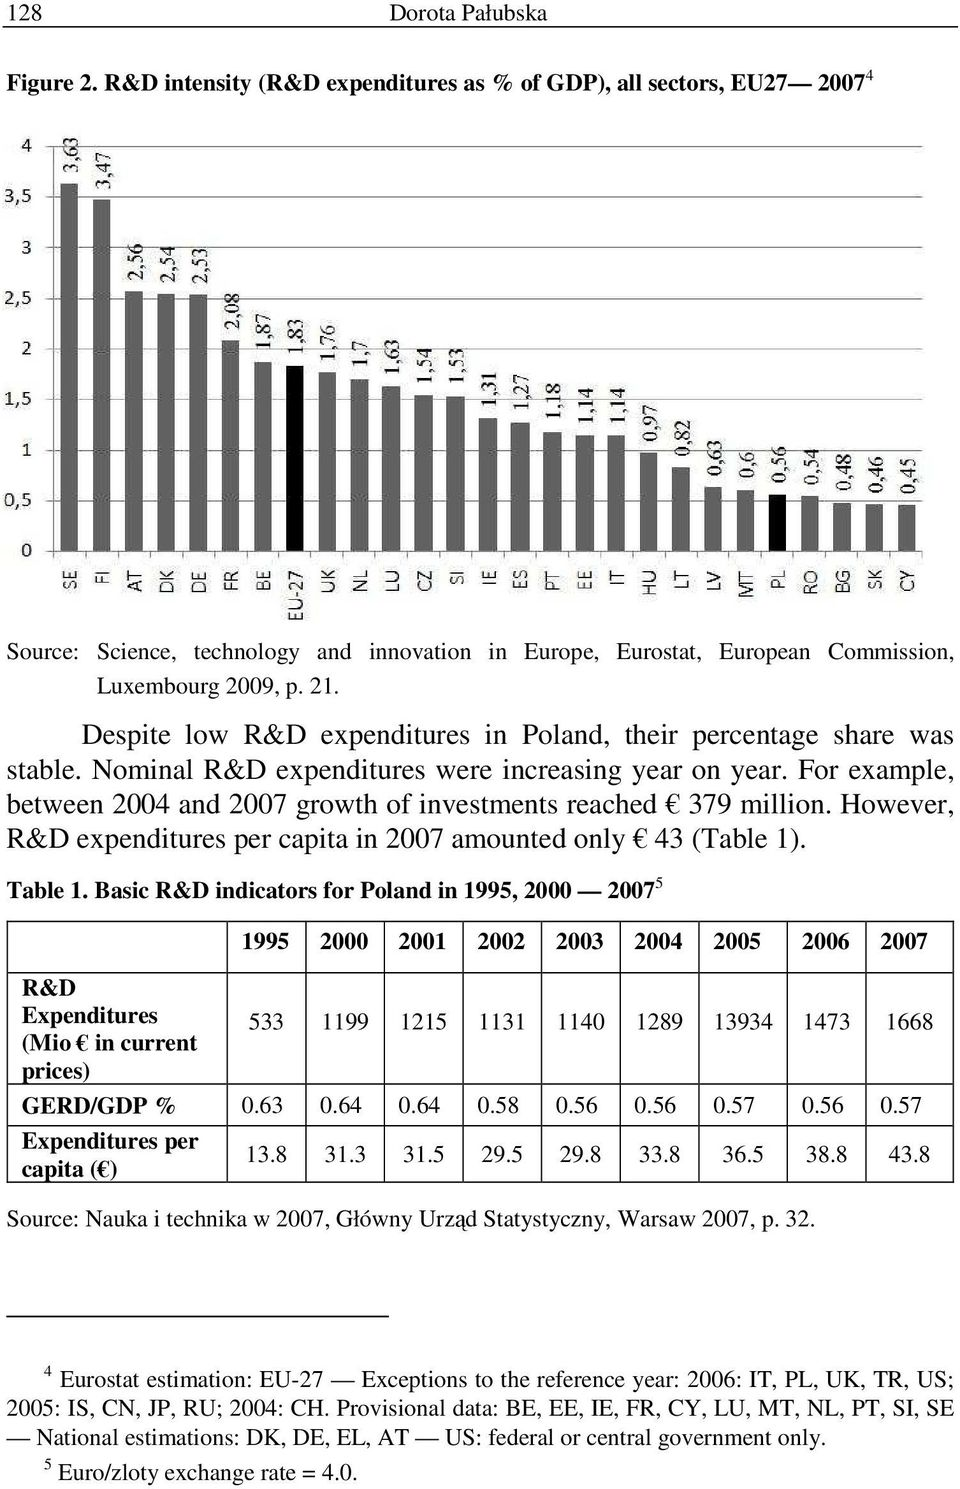 Despite low R&D expenditures in Poland, their percentage share was stable. Nominal R&D expenditures were increasing year on year.